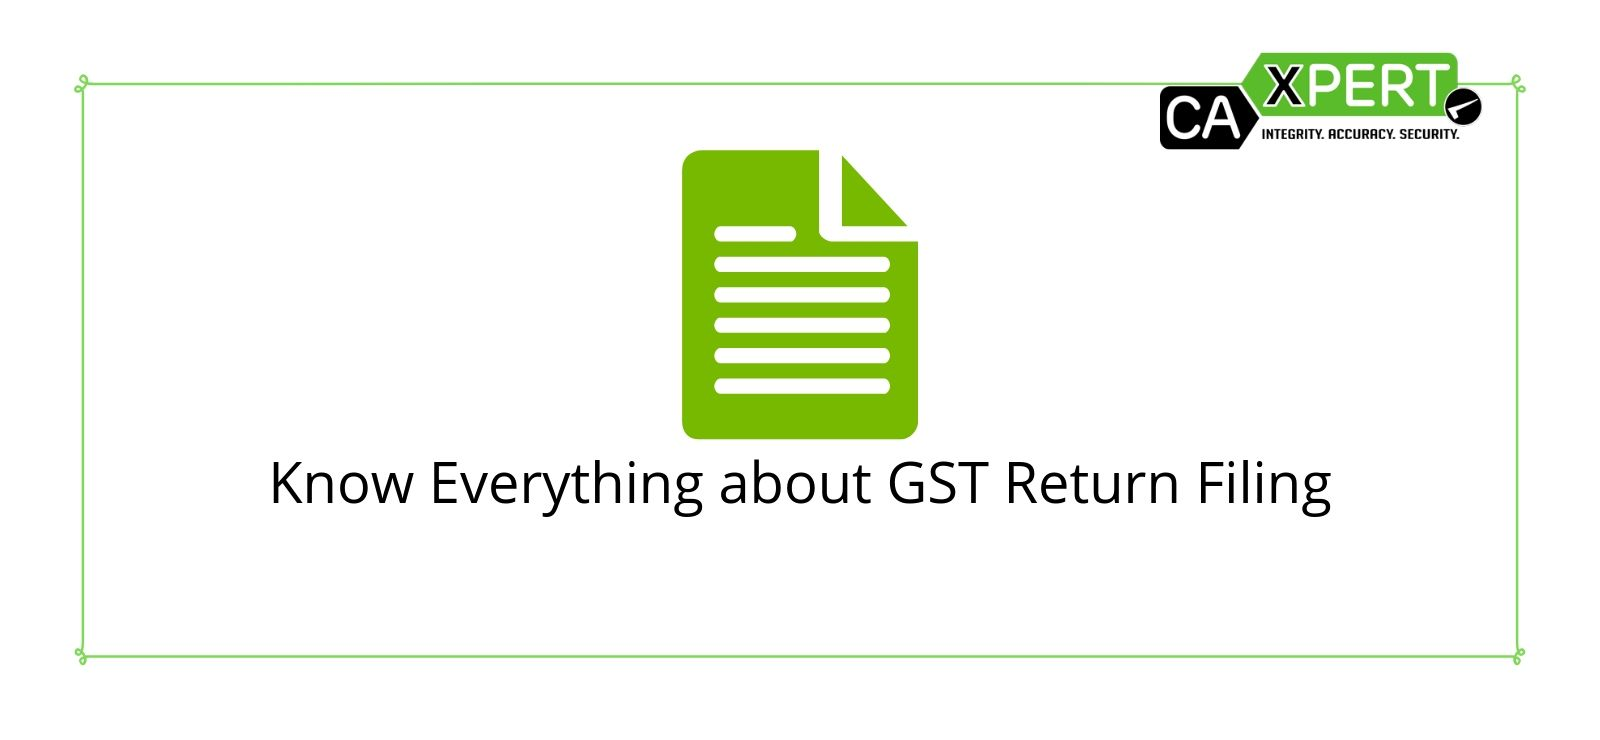 Know Everything about GST Return Filing